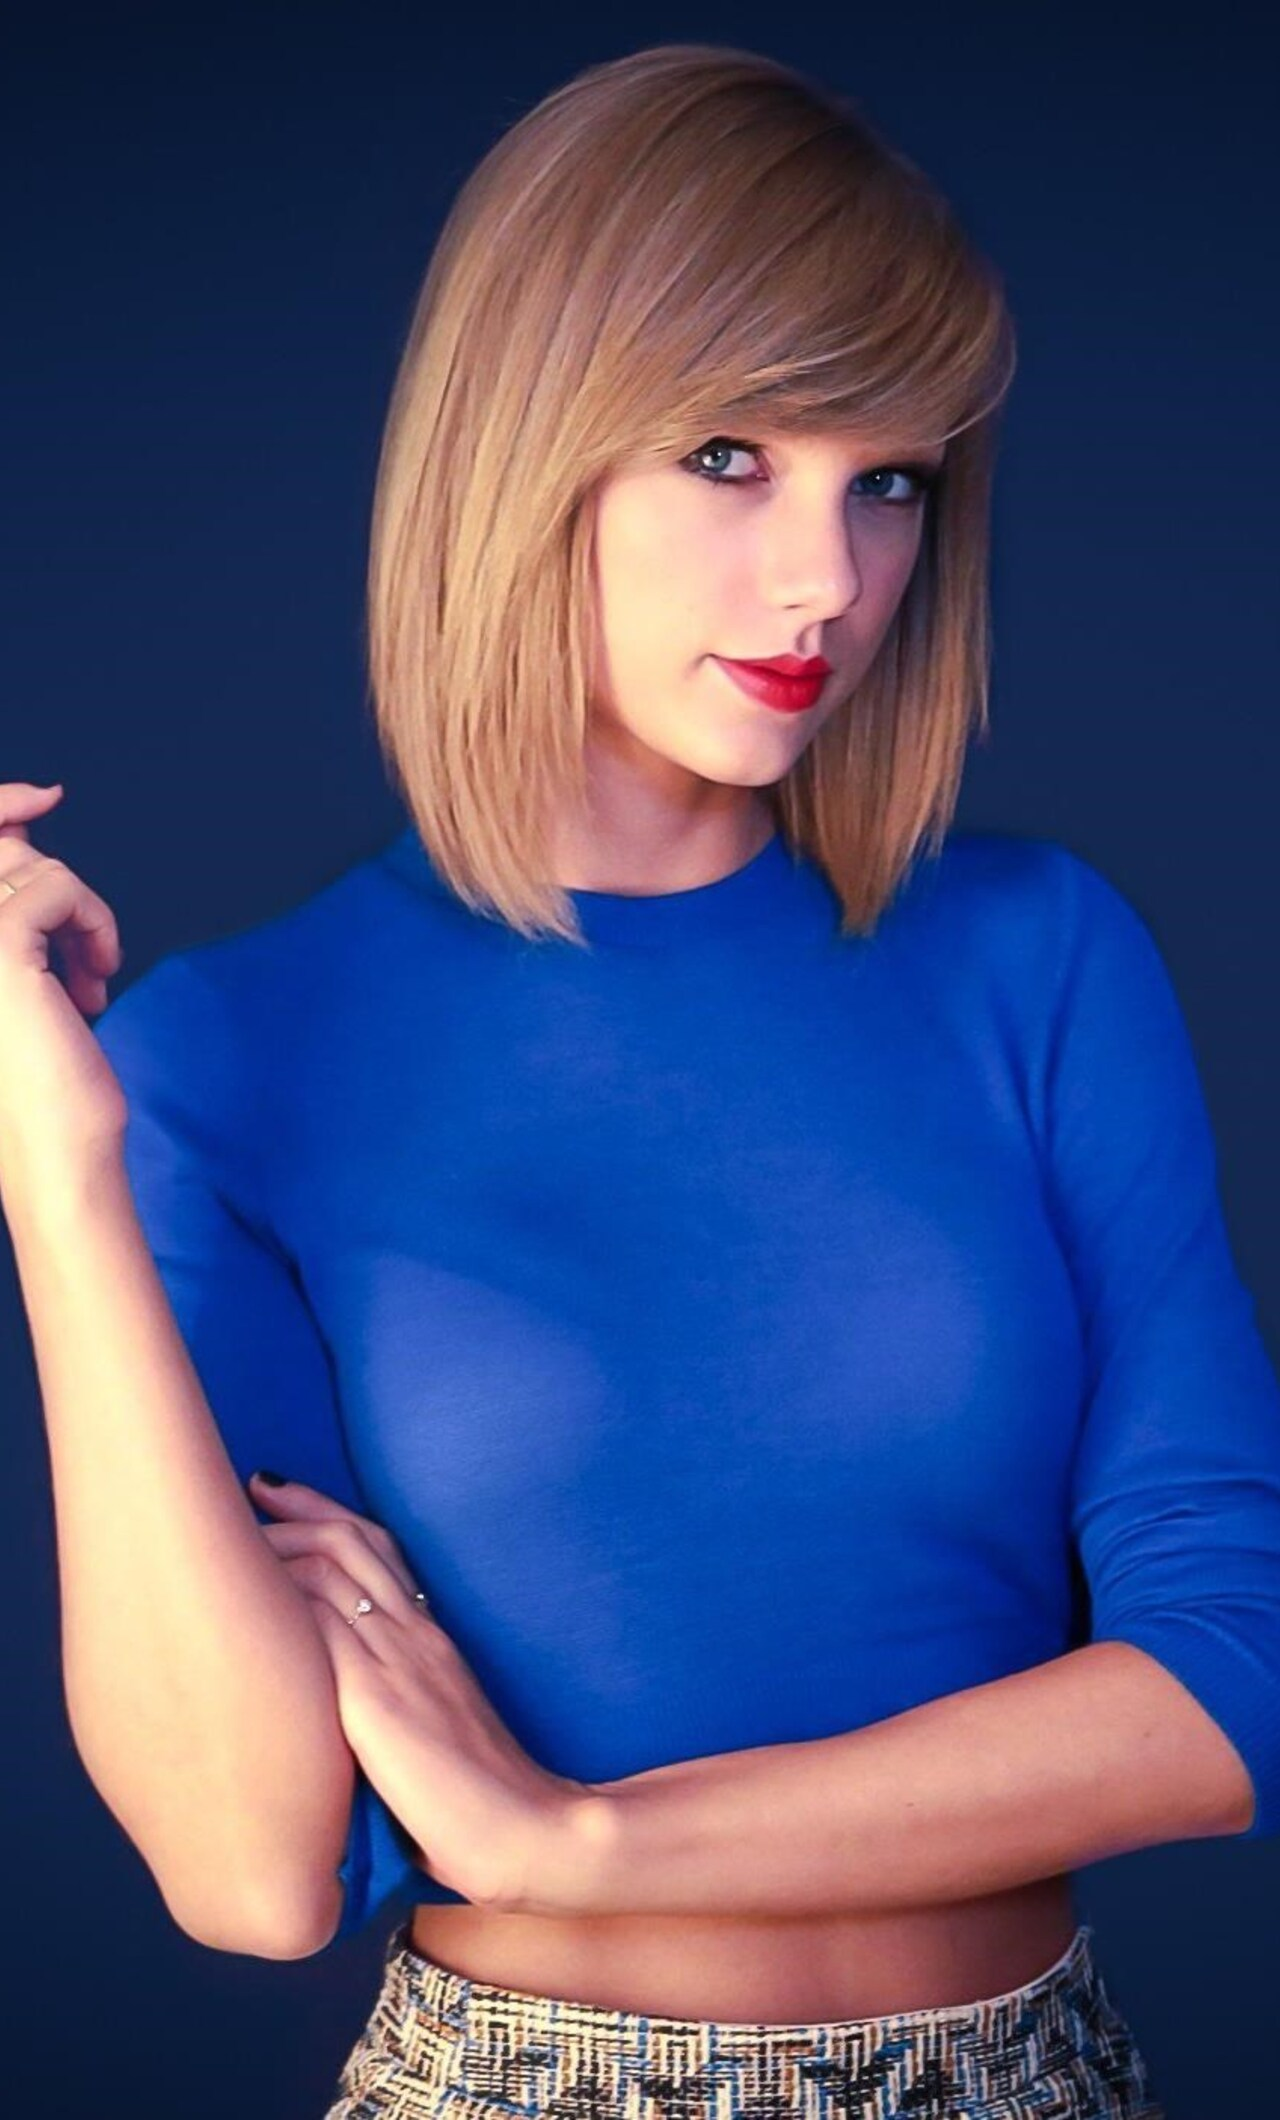 1280x2120 Taylor Swift New iPhone 6+ HD 4k Wallpapers, Images, Backgrounds, Photos and Pictures